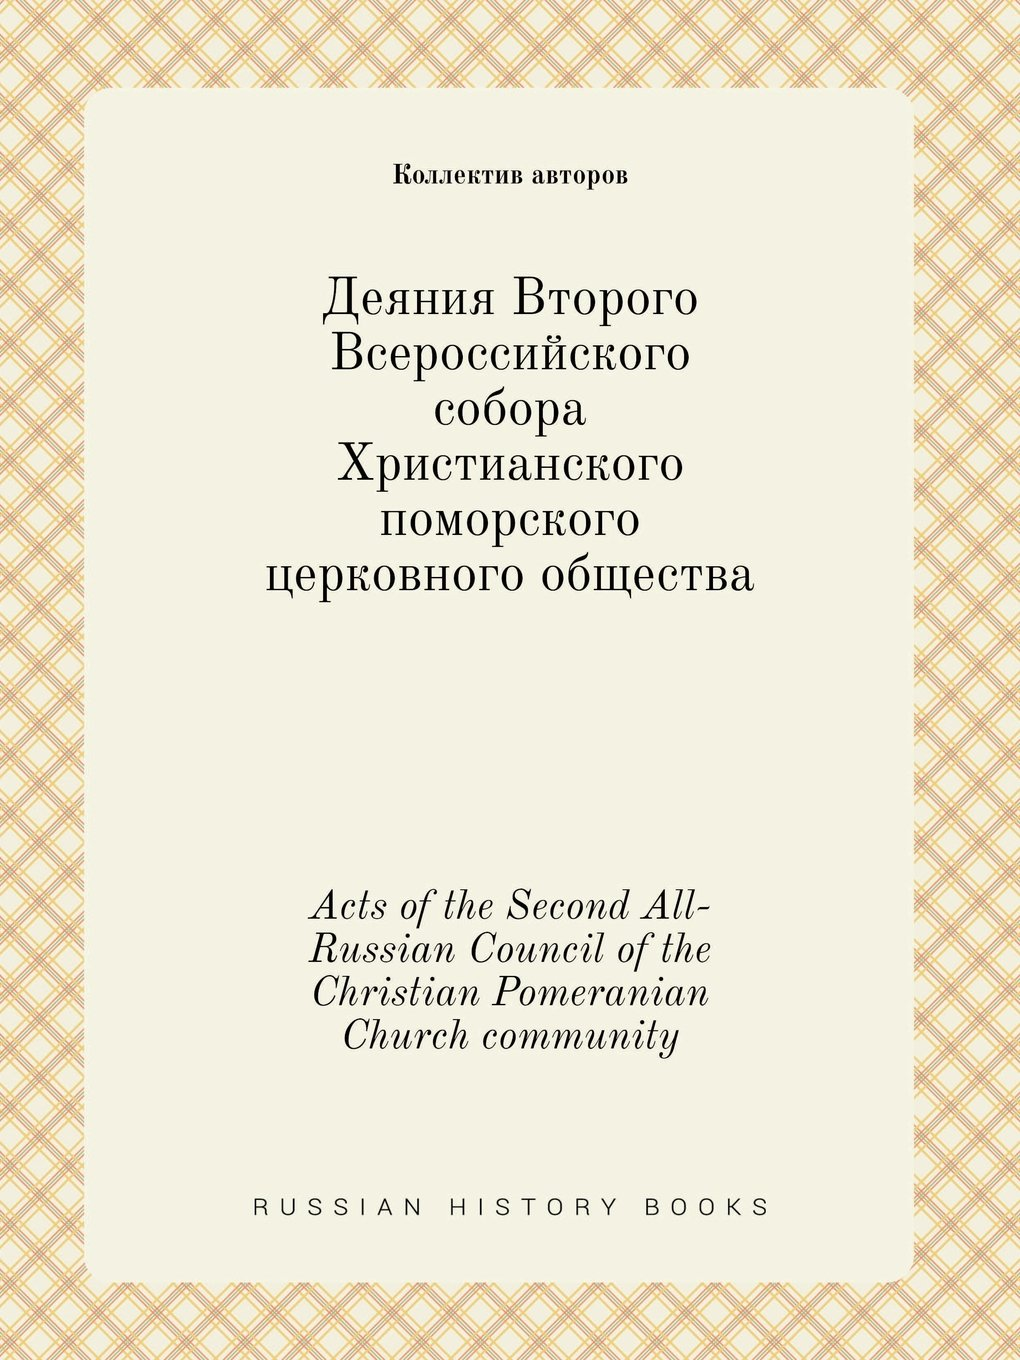 Read Online Acts of the Second All-Russian Council of the Christian Pomeranian Church community (Russian Edition) pdf